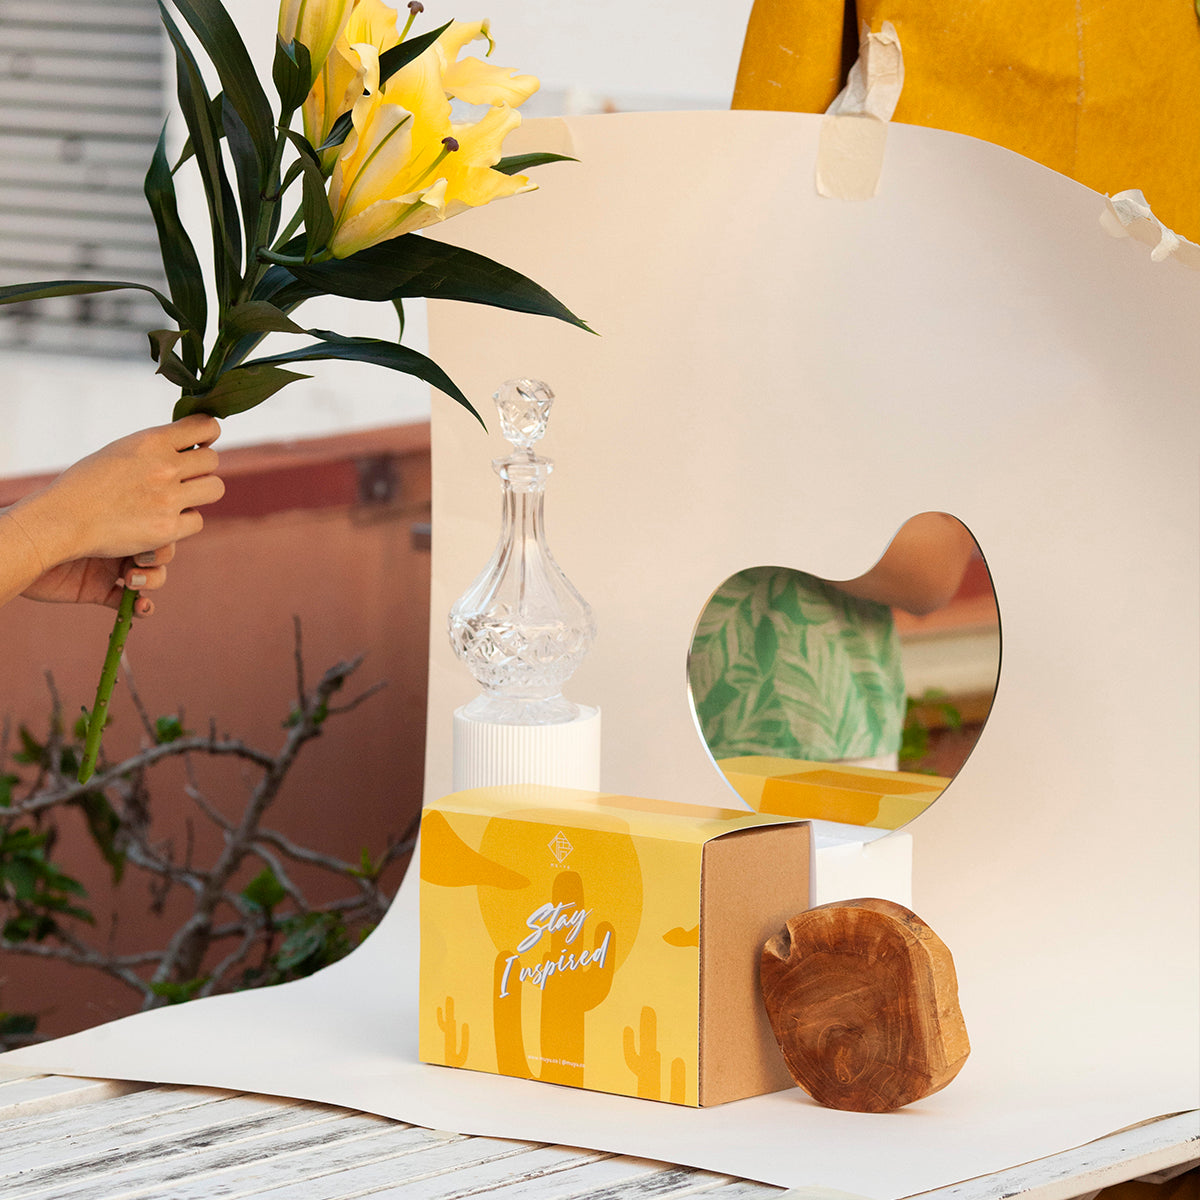 Stay Inspired - Gift Set